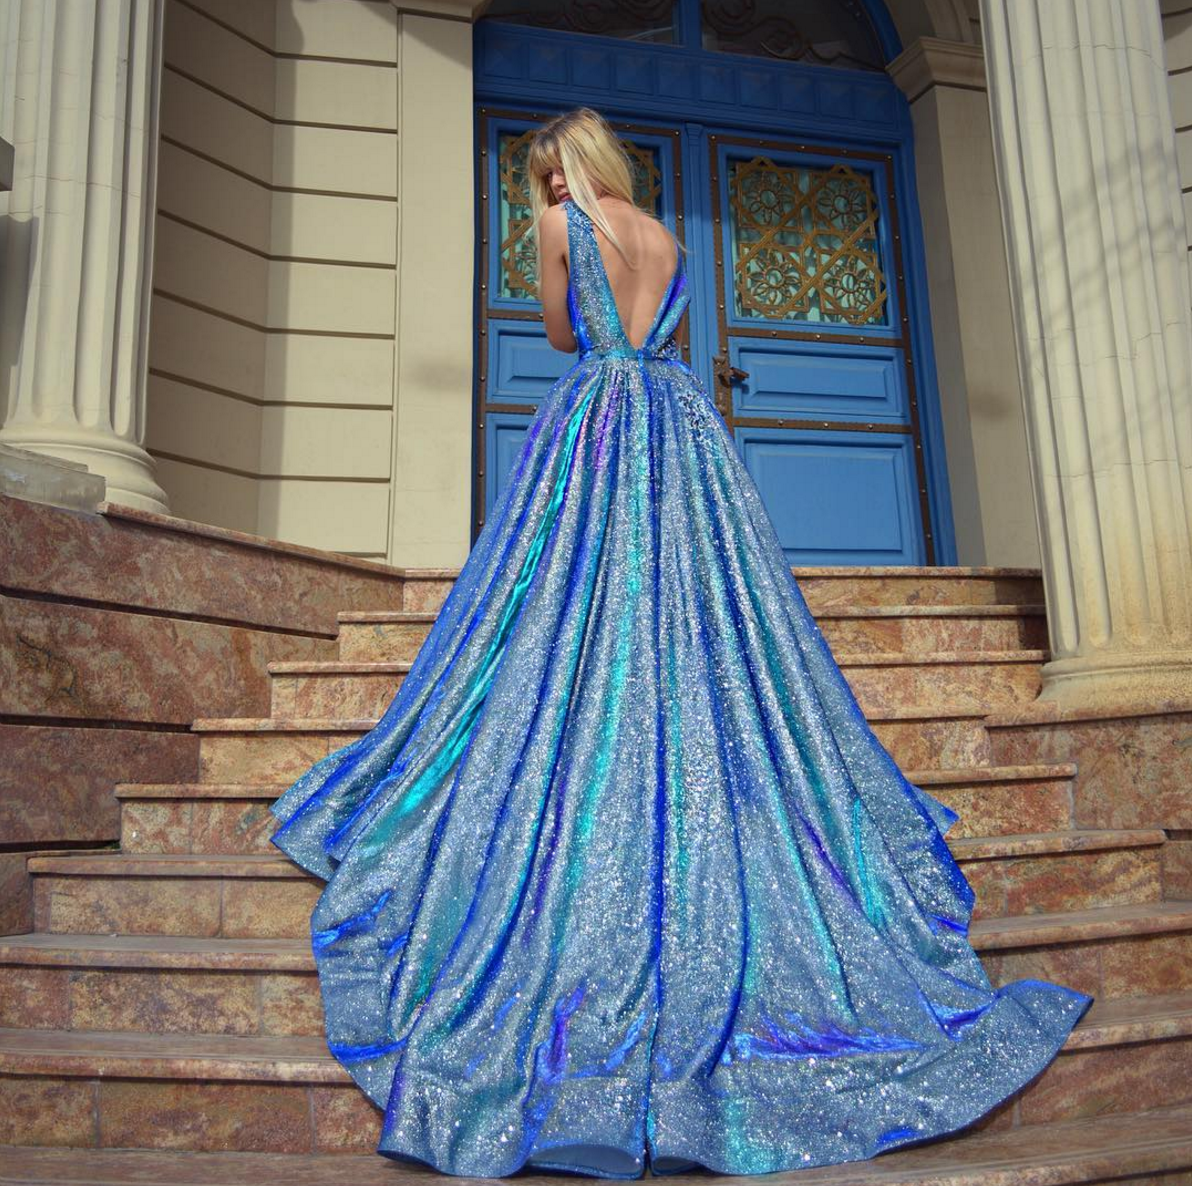 Blue shimmery Galaxy-inspired wedding dress / gown   Colored Wedding ...